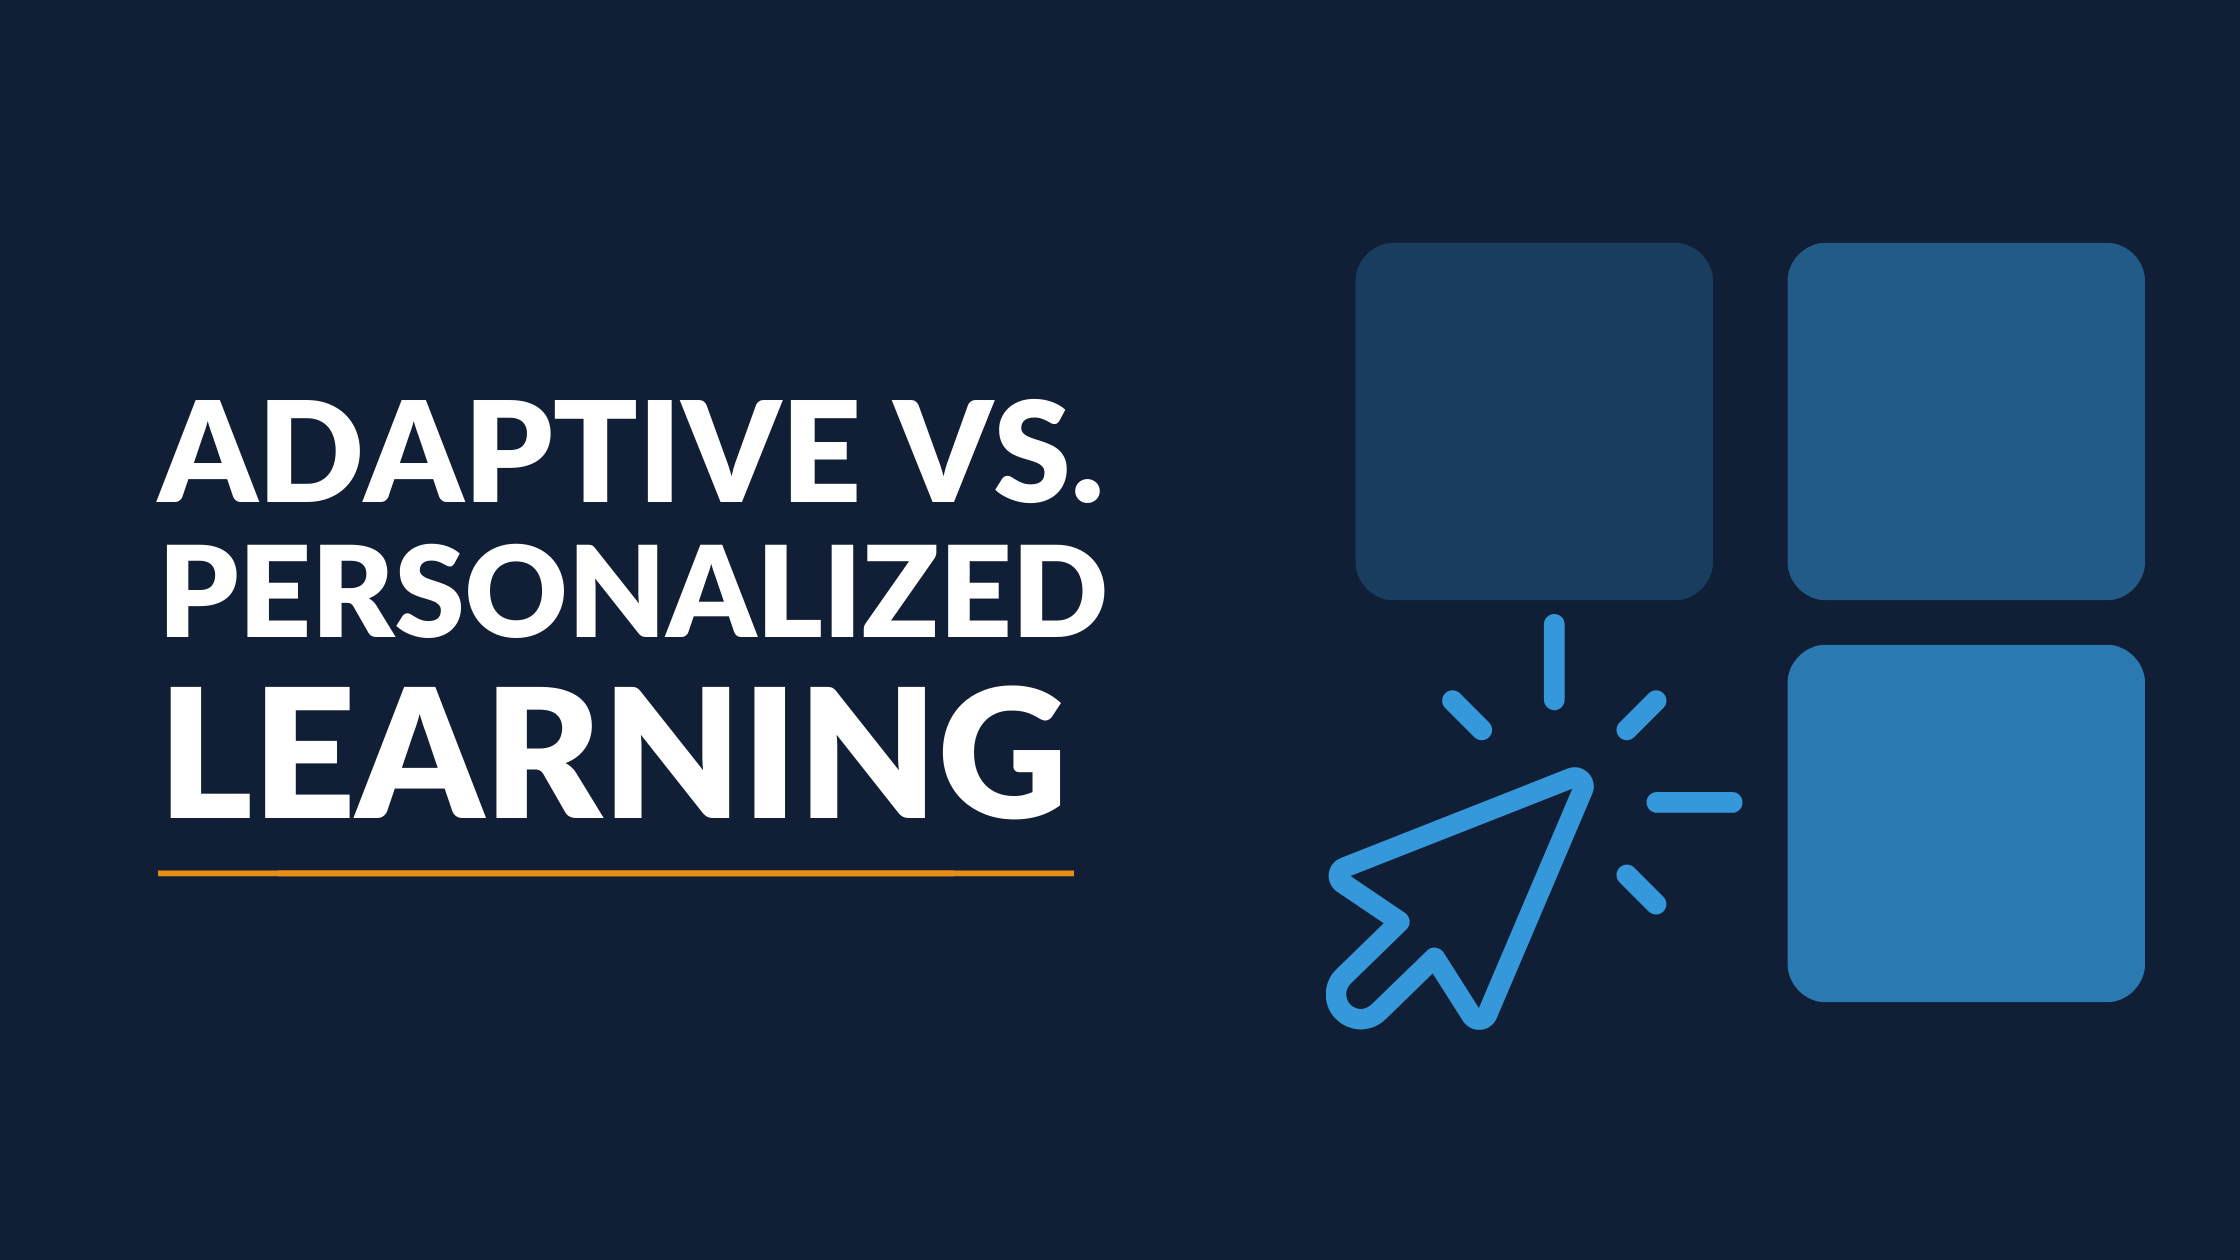 Adaptive Learning vs. Personalized Learning